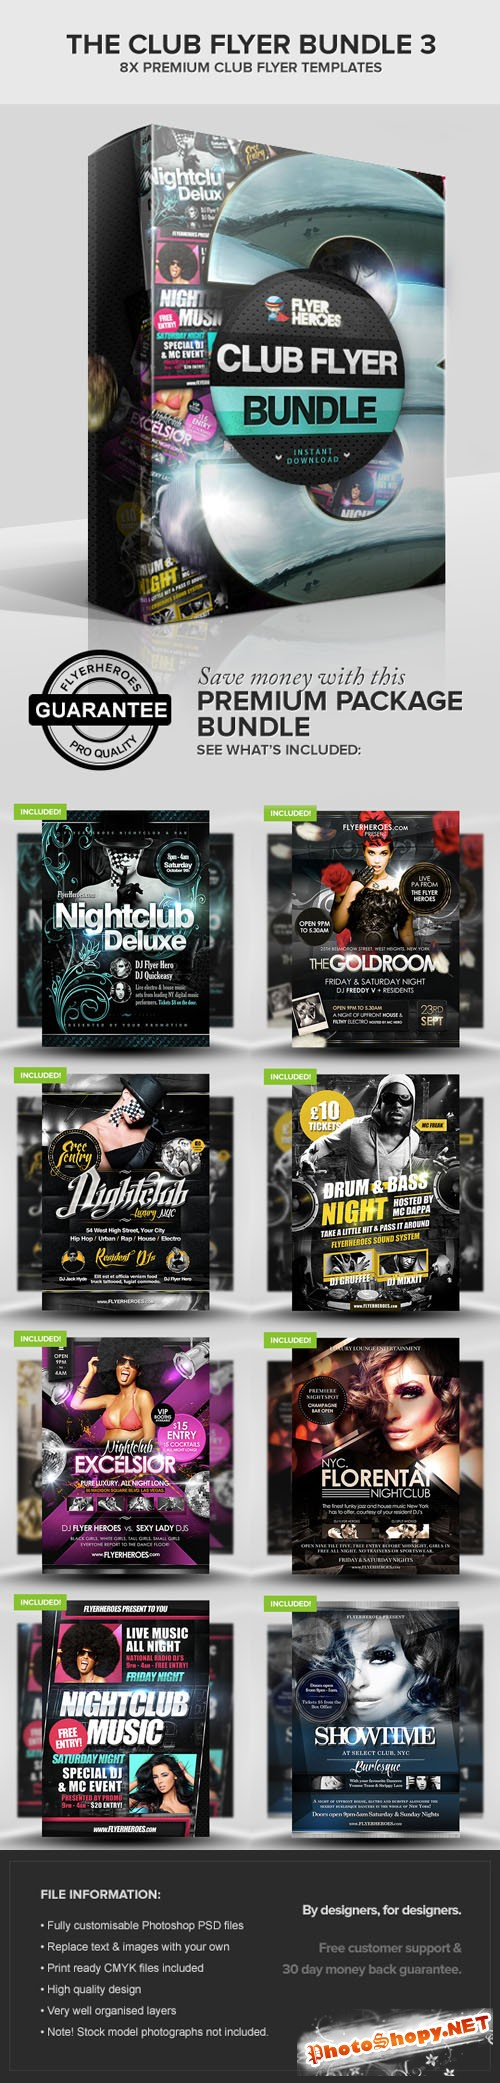 The Club Flyer Bundle 3